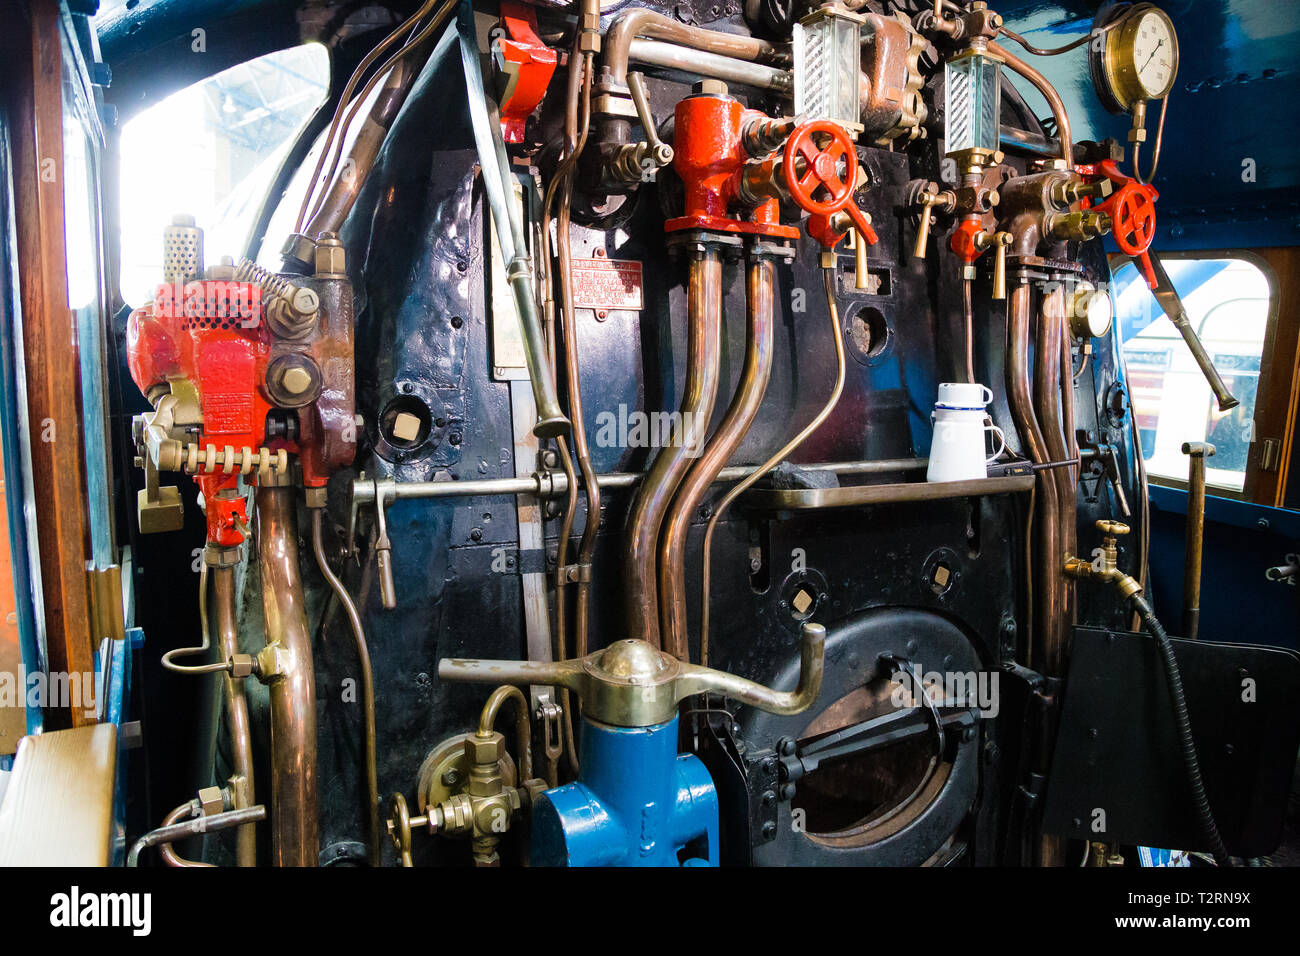 National Railway Museum, York. Footplate view of the Mallard steam locomotive, which has held the record in the past as the fastest steam engine. - Stock Image